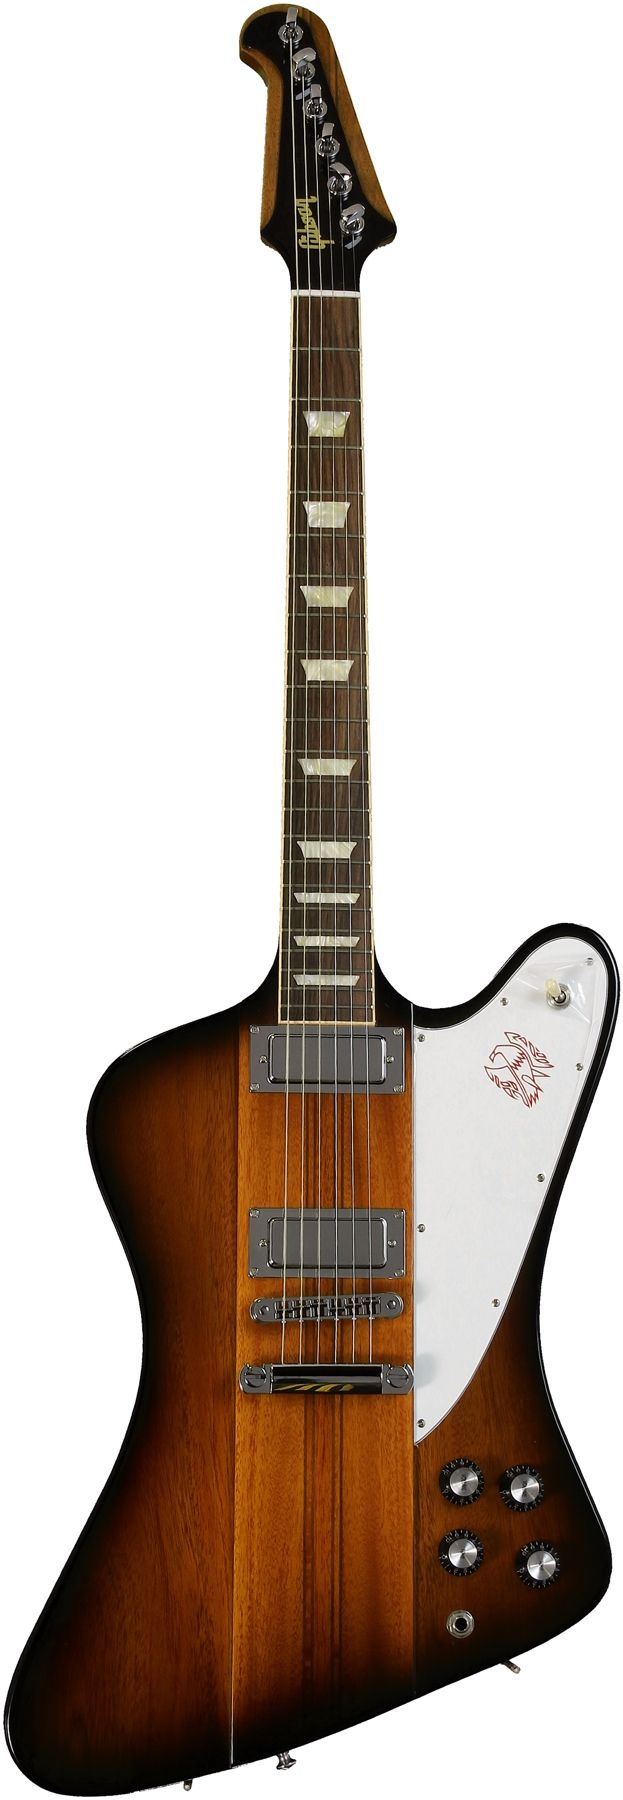 Gibson Firebird (Vintage Sunburst). Used to think they were ugly but I've since grown to love them.  They're oddly beautiful